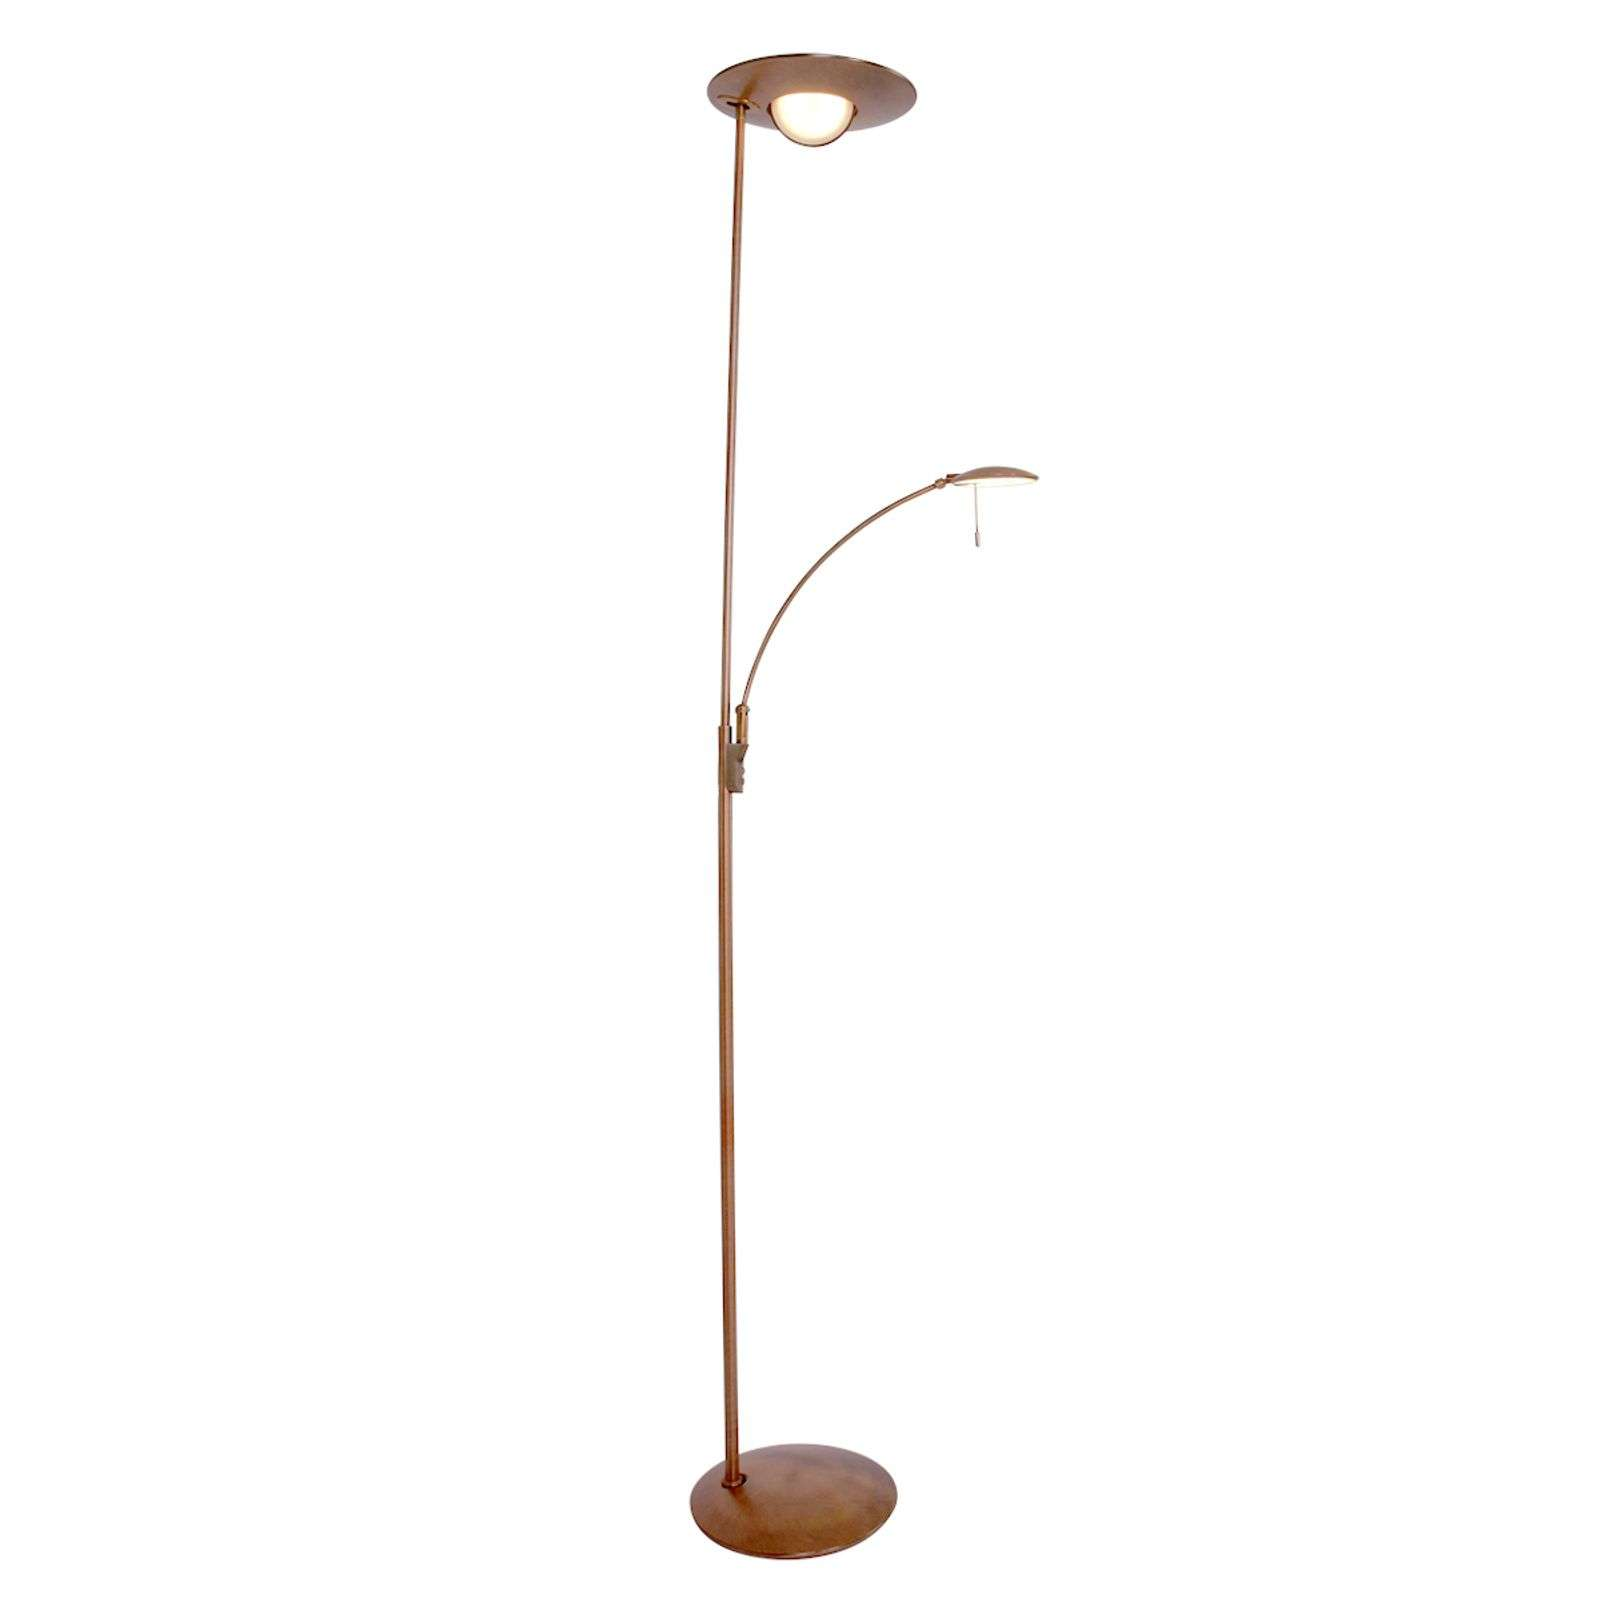 Lampadaire LED Zenith couleur bronze, dimmable